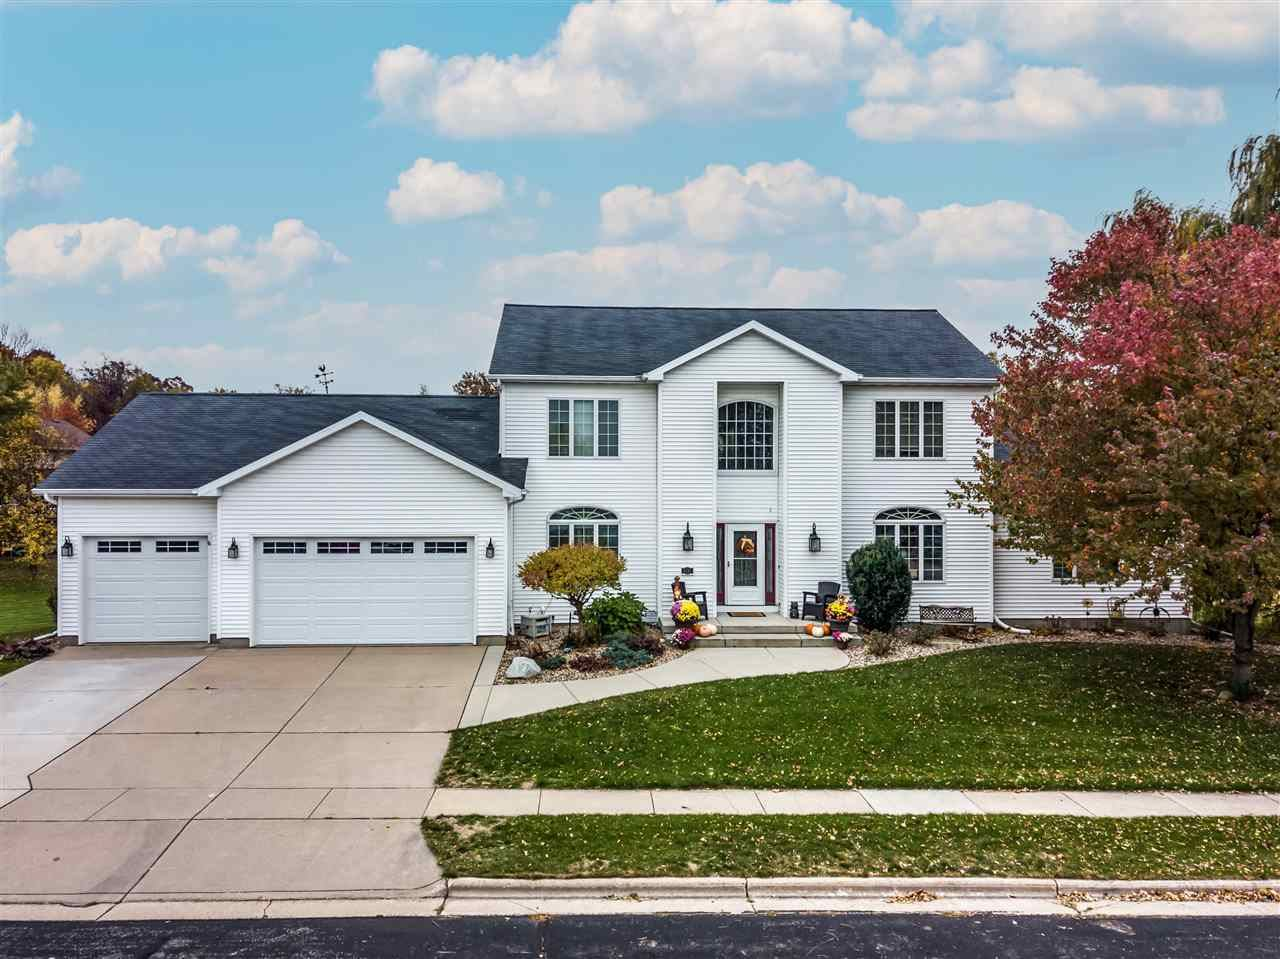 1717 Barberry Rd, Stoughton, WI 53589 - #: 1899306